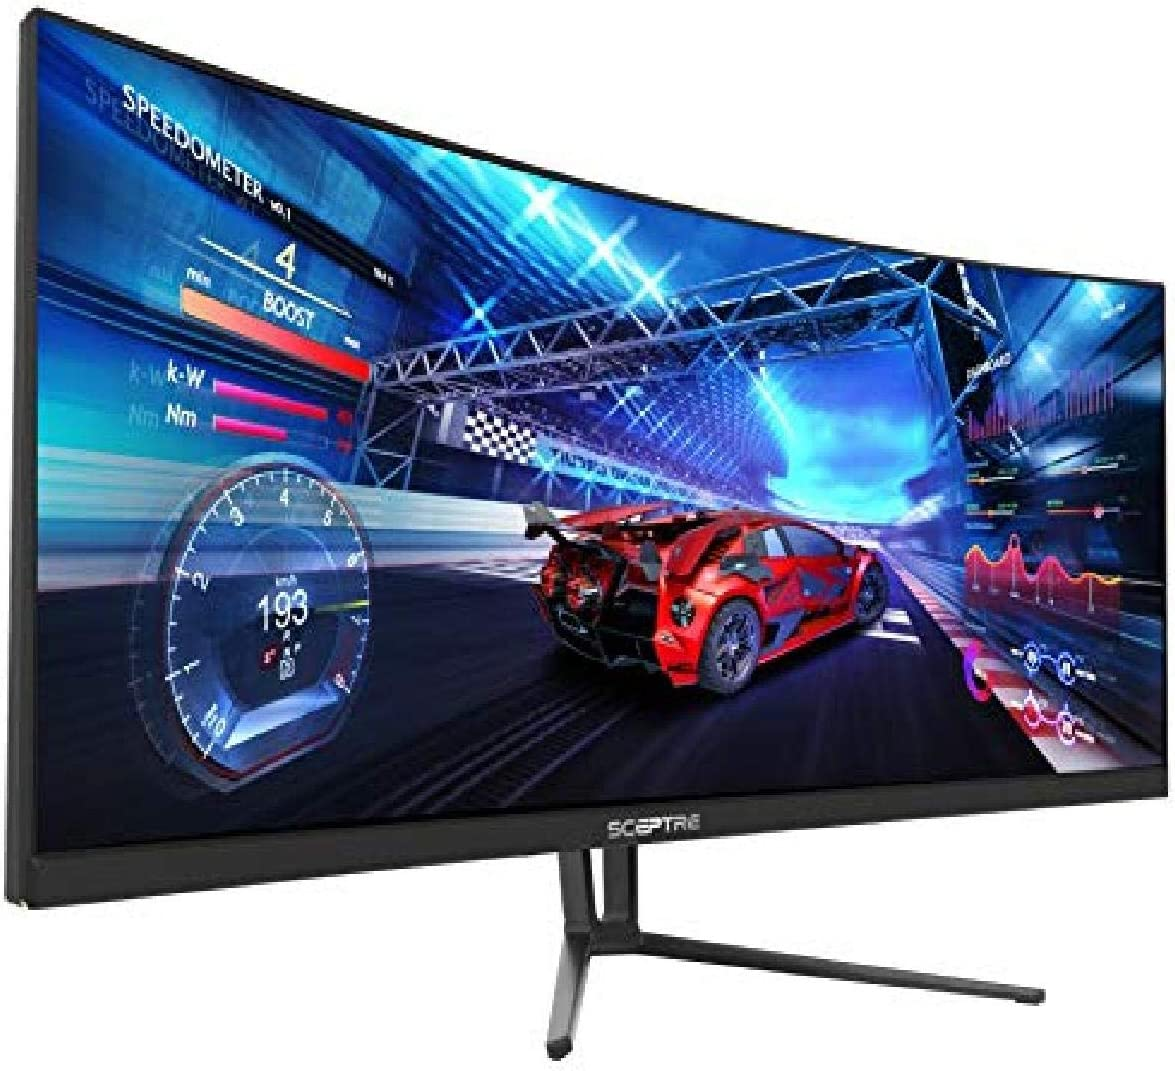 Sceptre 35 Inch Curved UltraWide 21: 9 LED Creative Monitor QHD 3440x1440 Frameless AMD Freesync HDMI DisplayPort Up to 100Hz, Machine Black 2020 (C355W-3440UN)